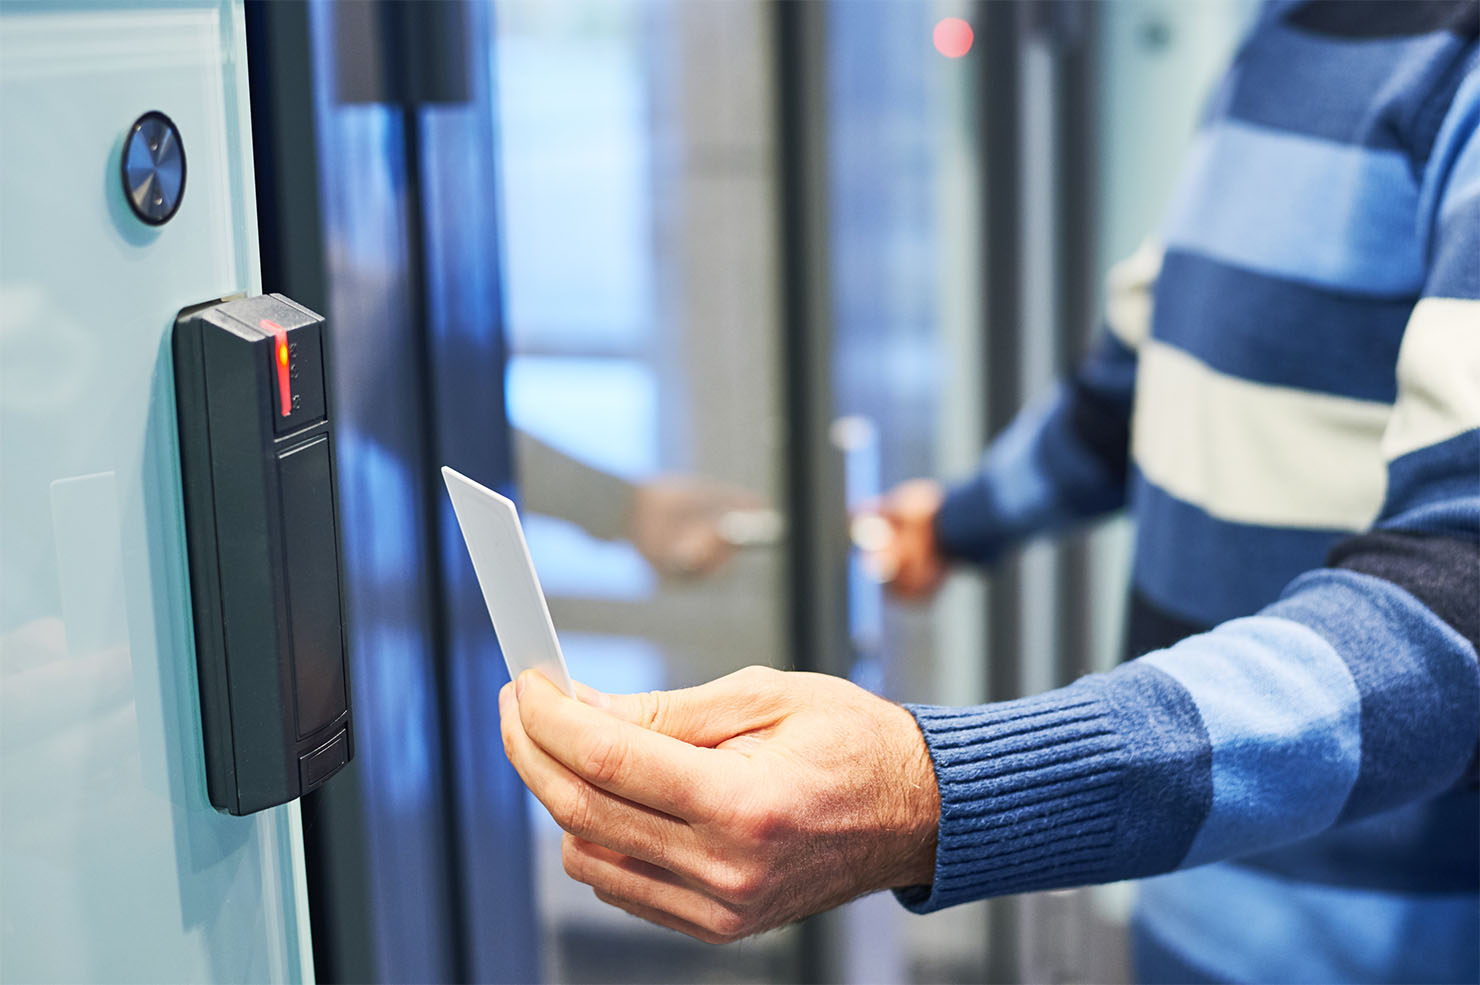 Scanning ID - Physical Security 101